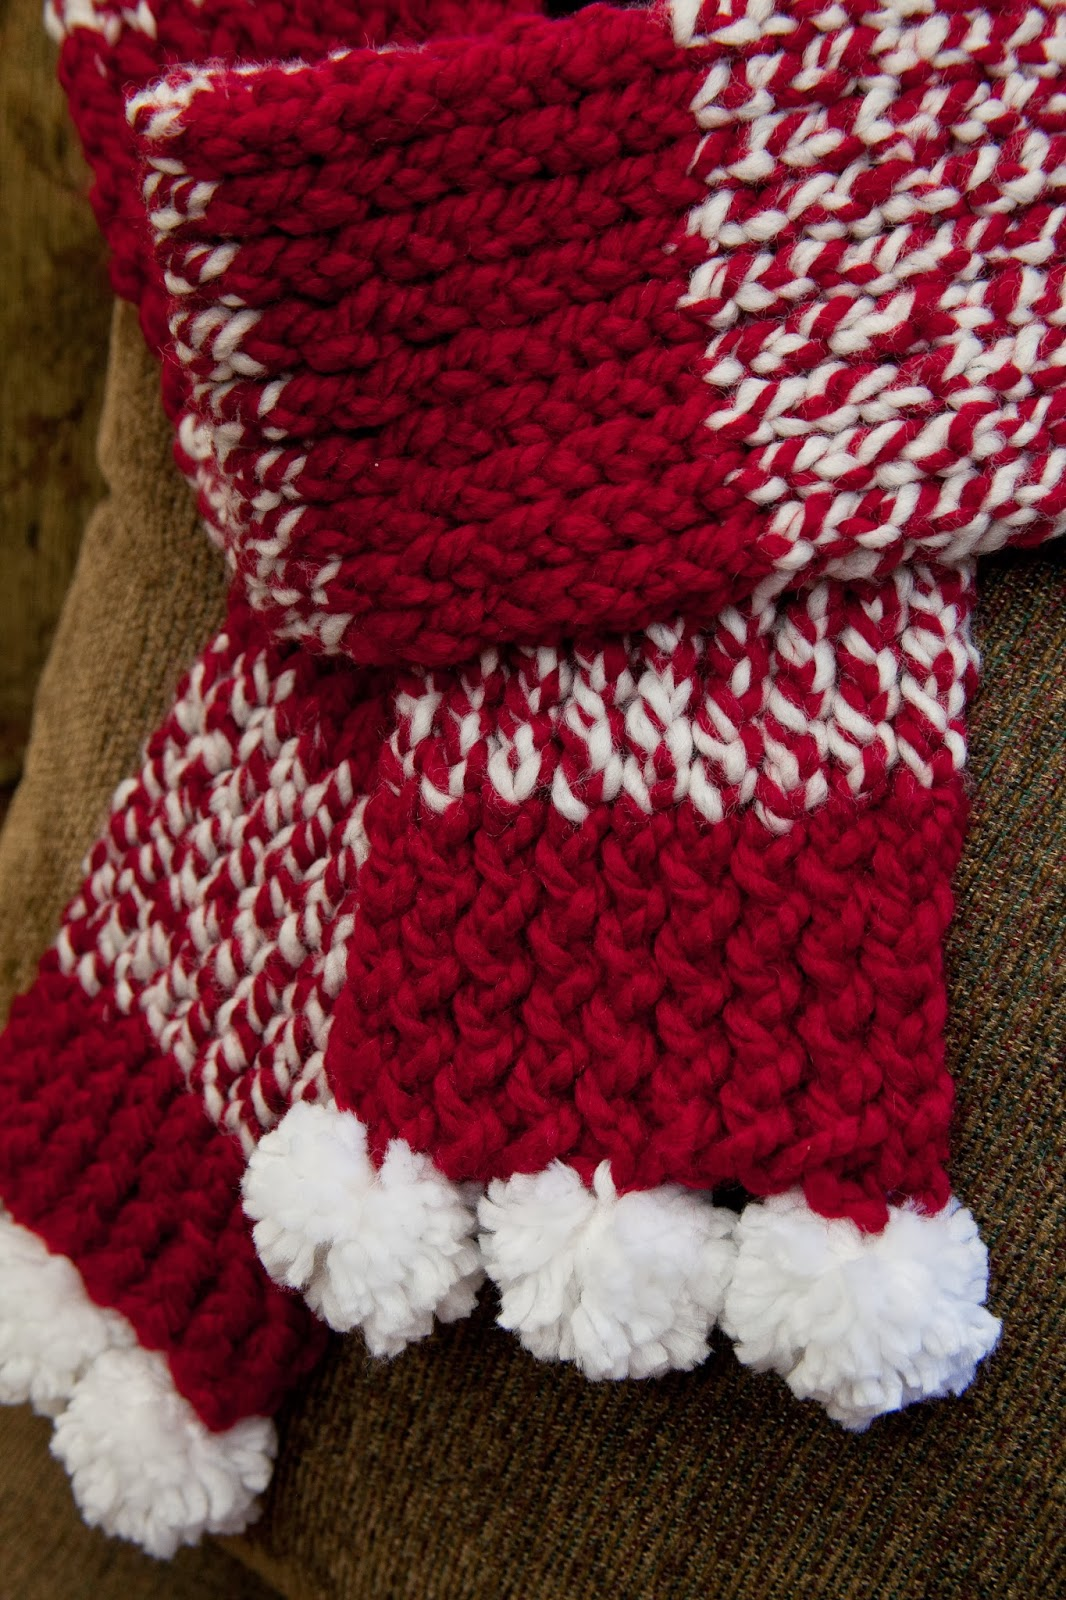 Knitting Scarf Patterns With Loom : Loom Knitting by This Moment is Good!: LOOM KNIT HOLIDAY SCARF